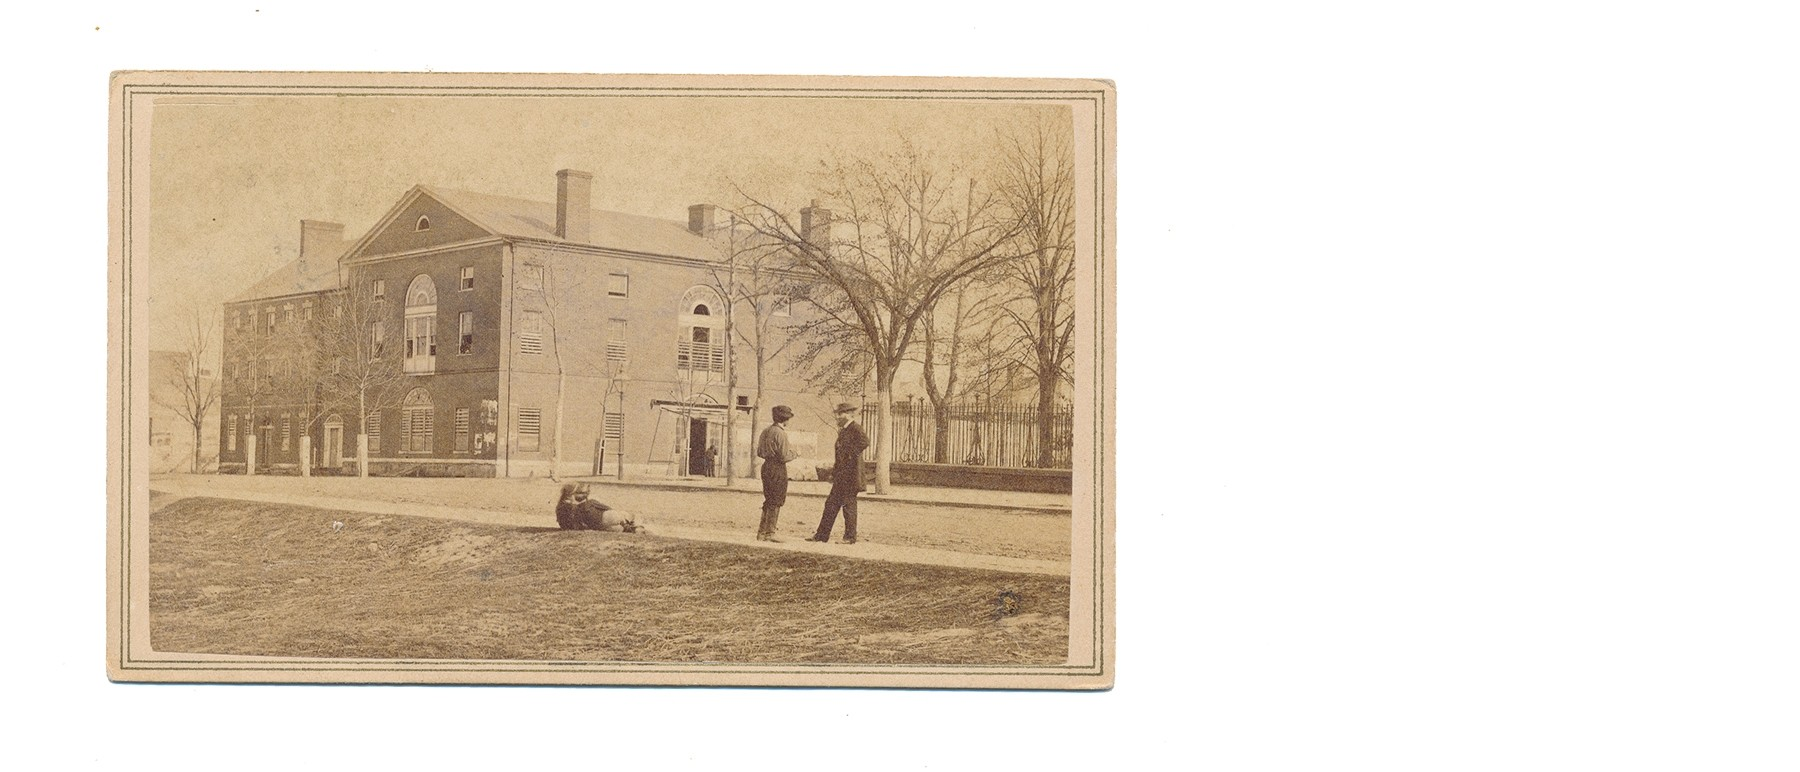 OUTDOOR CDV VIEW OF OLD CAPITOL PRISON BY BRADY